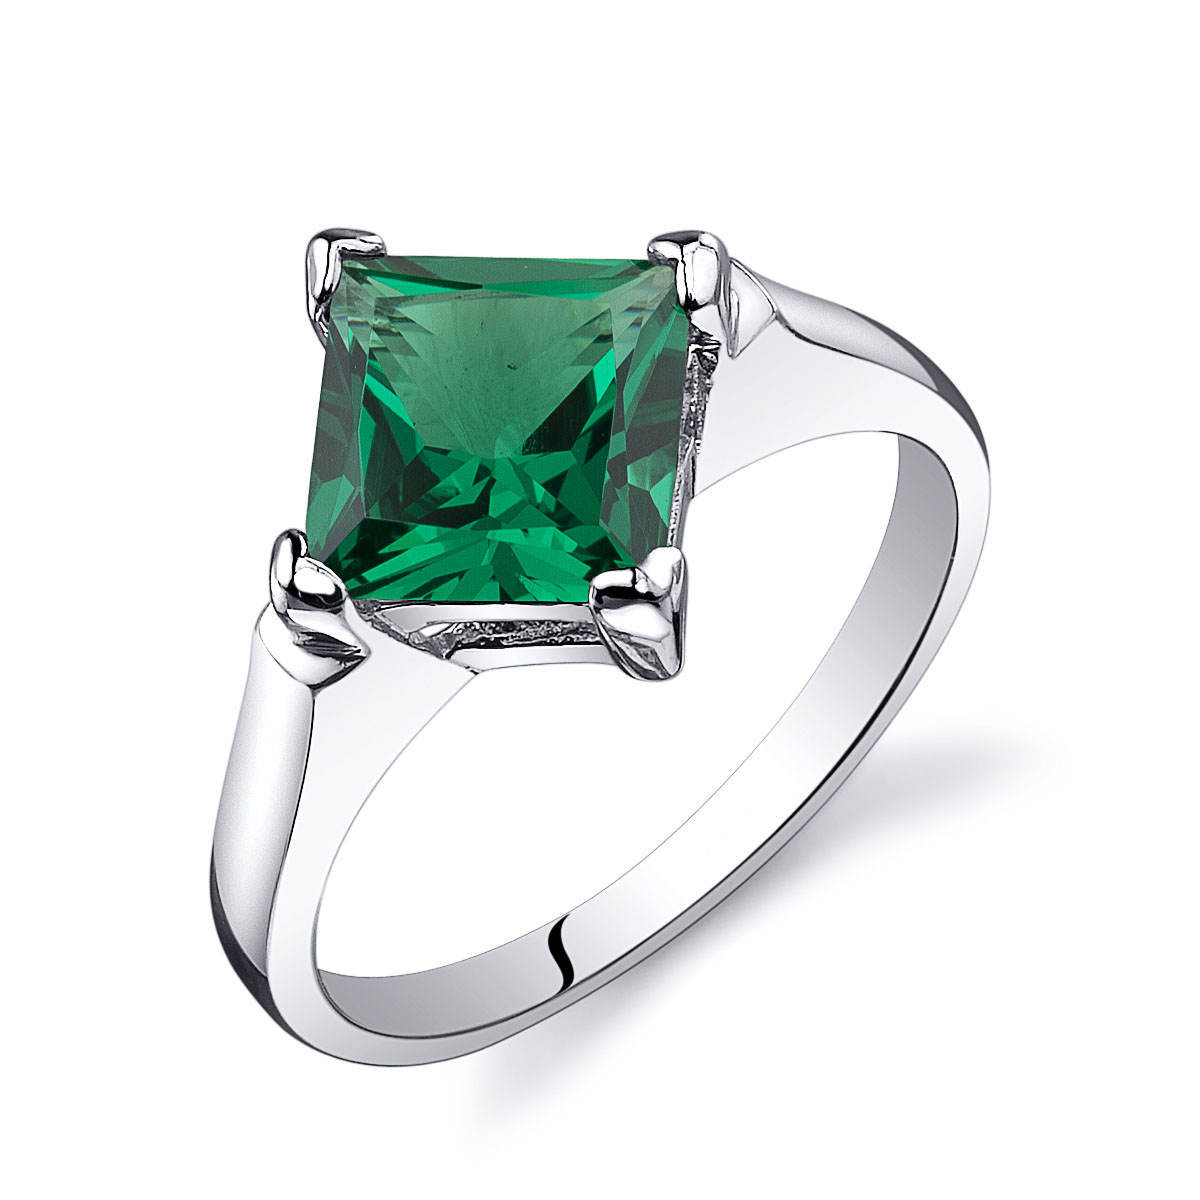 Princess Cut Emerald Striking Engagement Ring in Sterling Silver